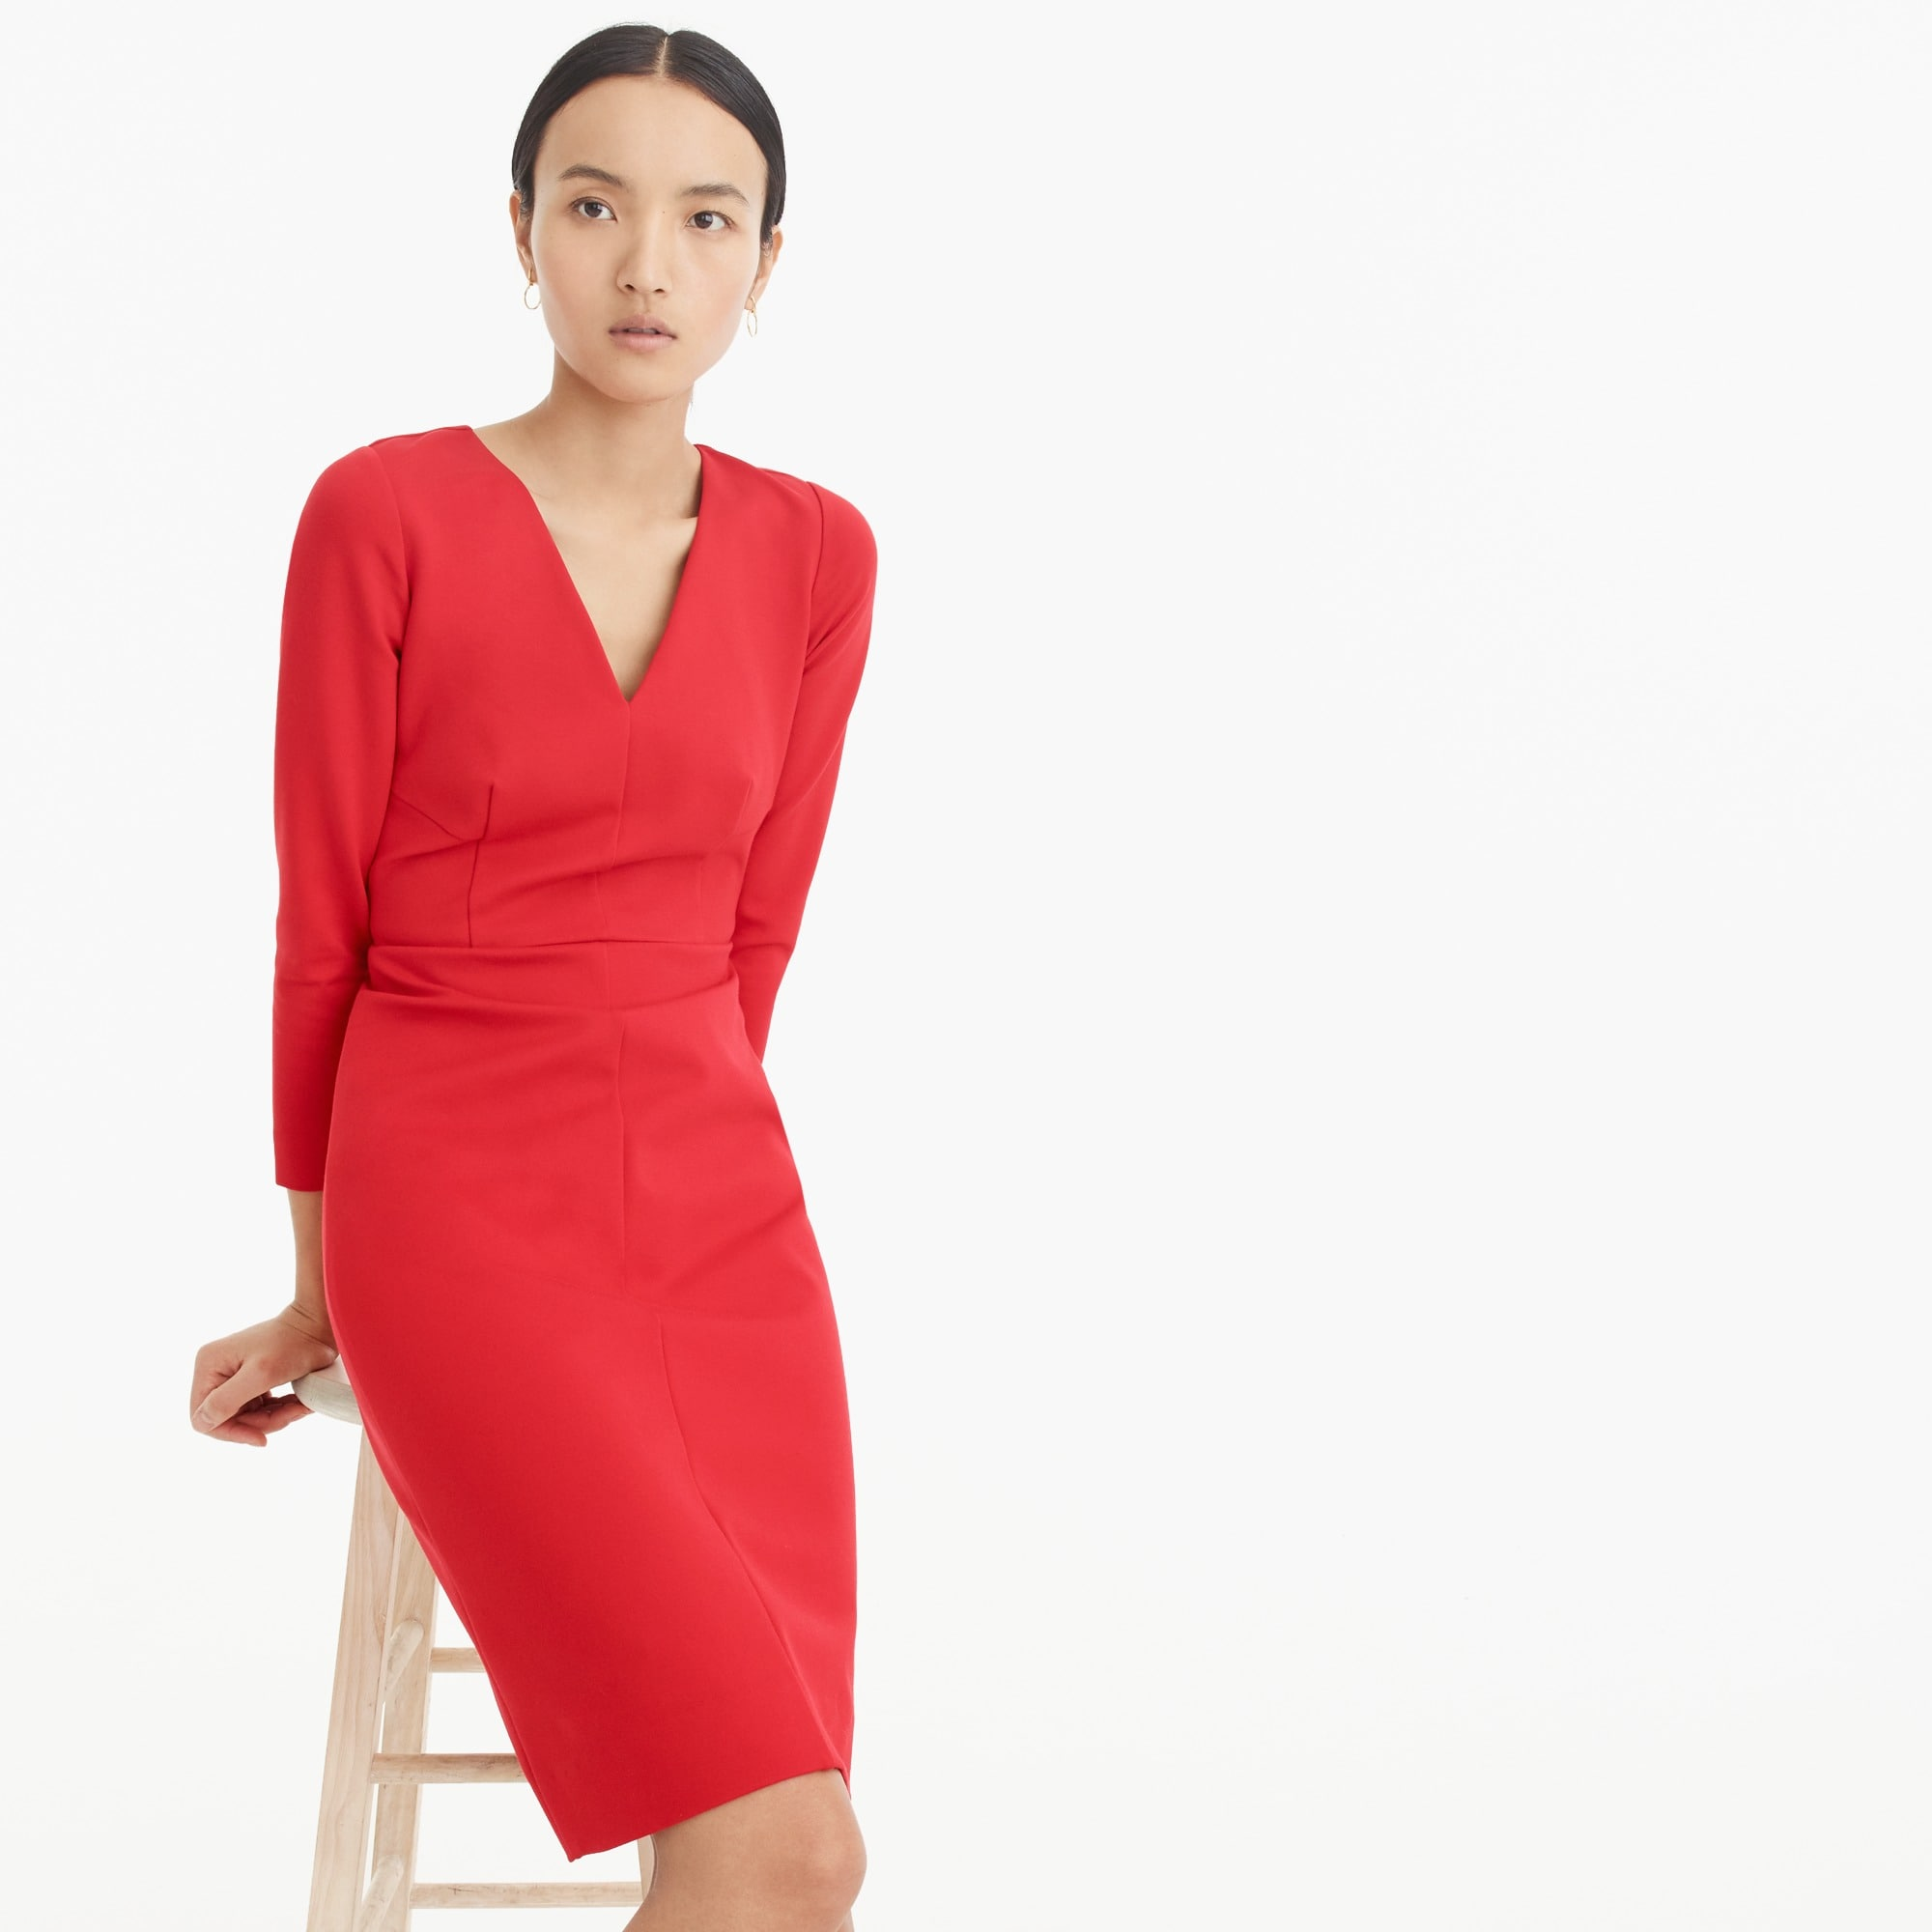 Long-sleeved sheath dress in stretch ponte